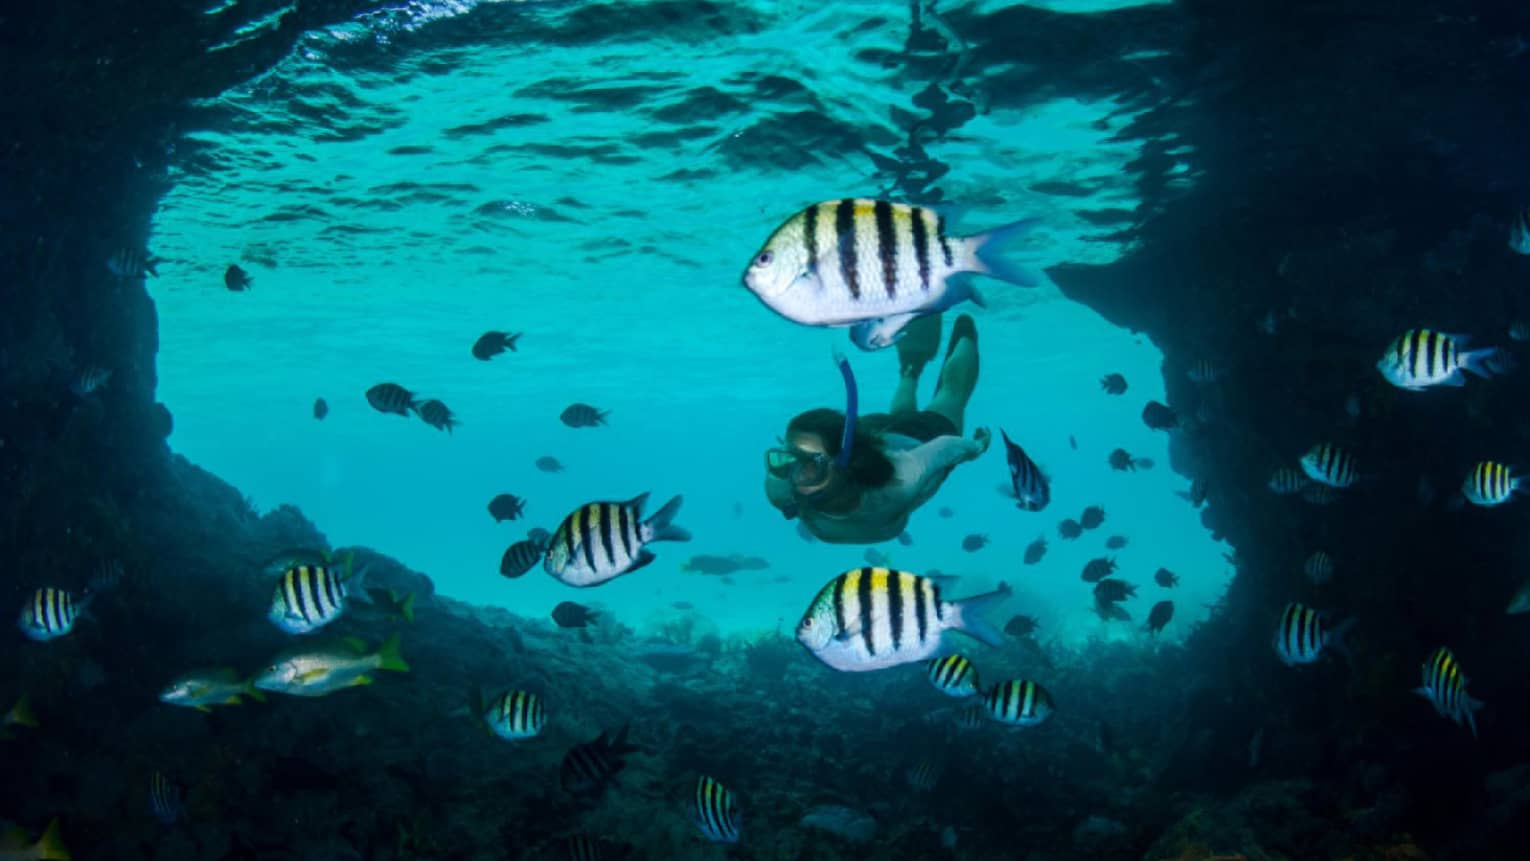 Underwater view of tropical fish in lagoon